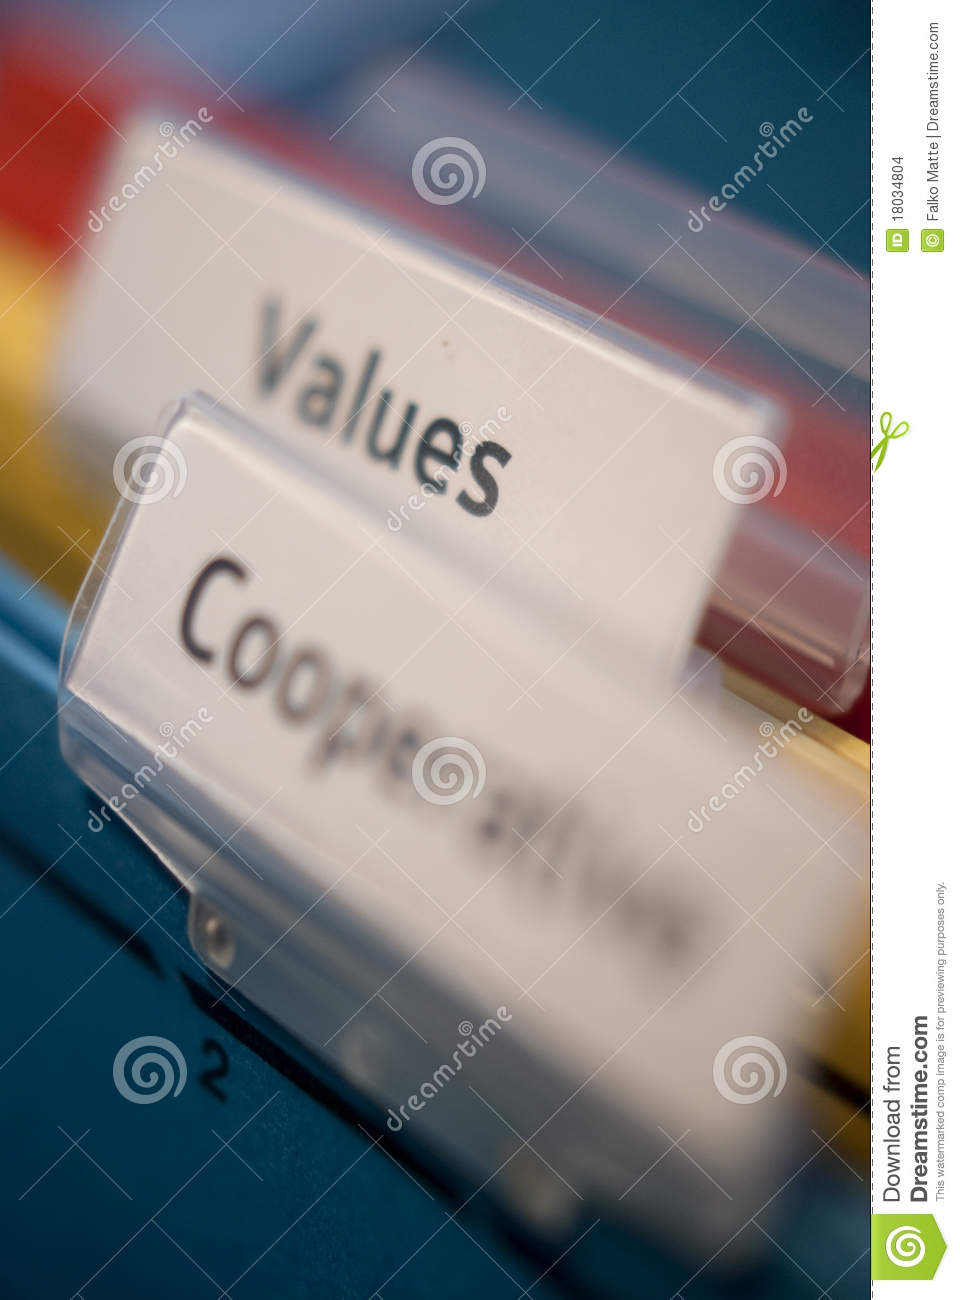 Values and Cooperative tags